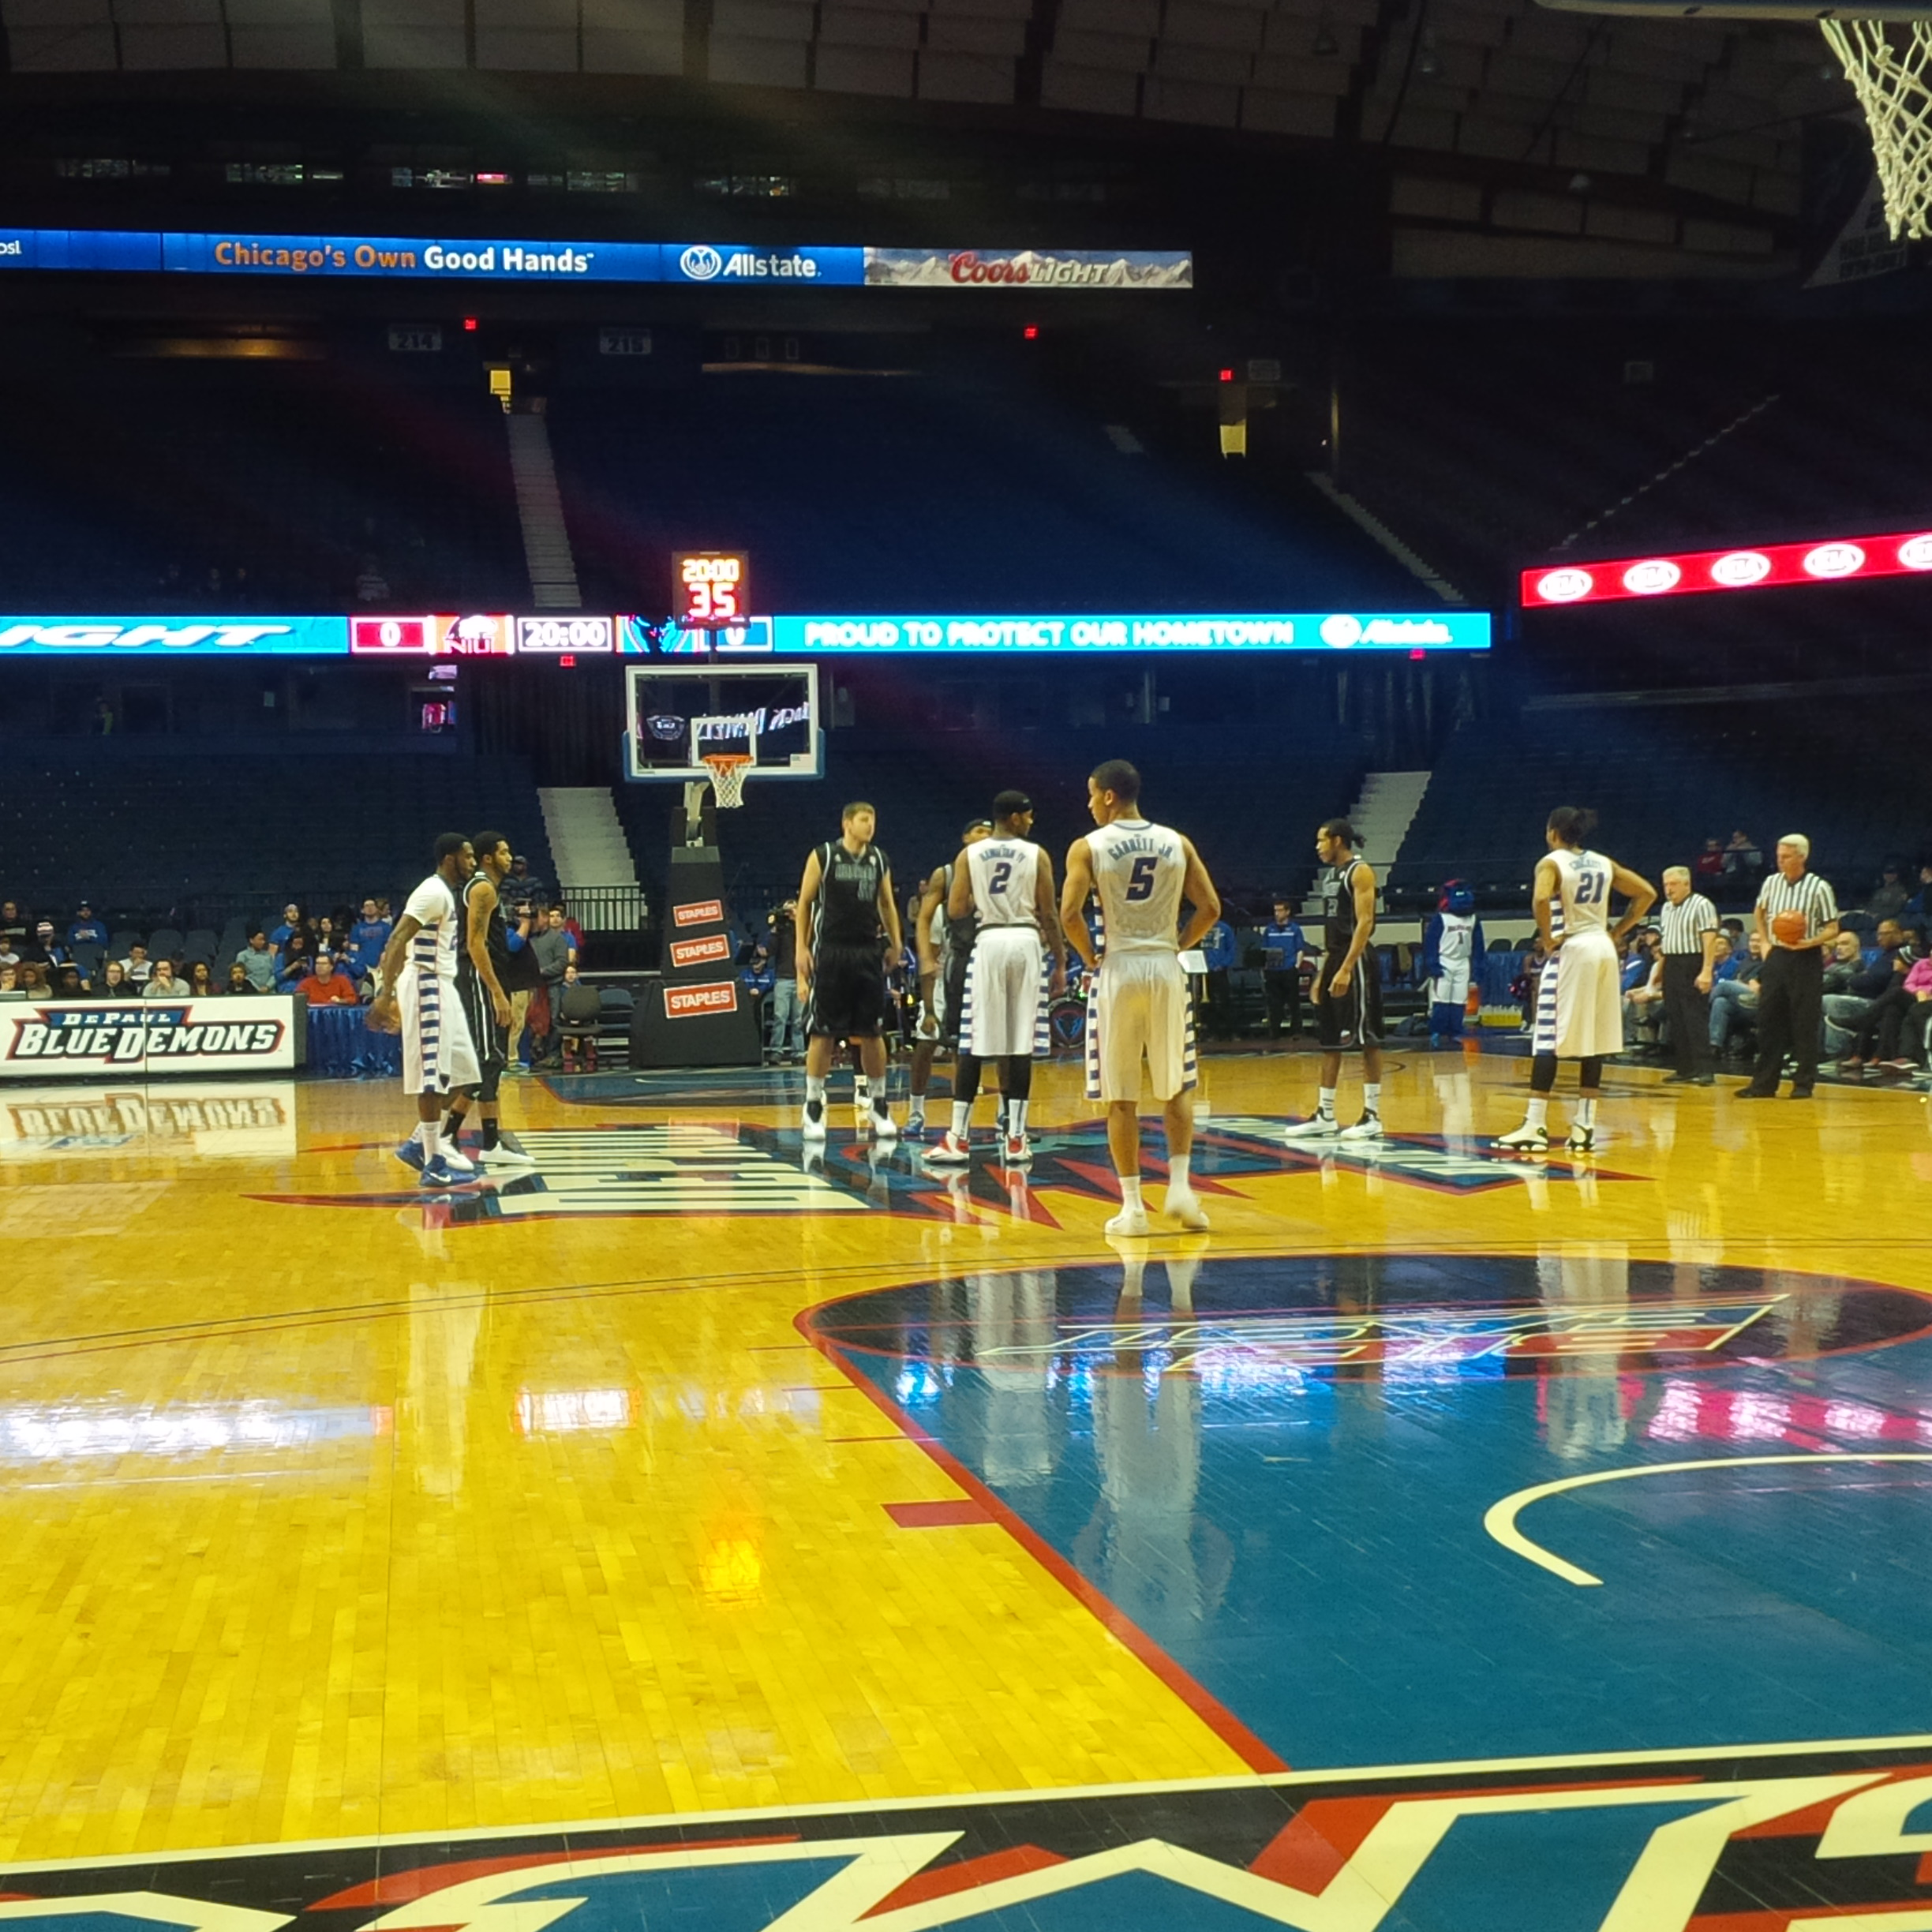 The Blue Demons tip off against the Huskies on Tuesday night.